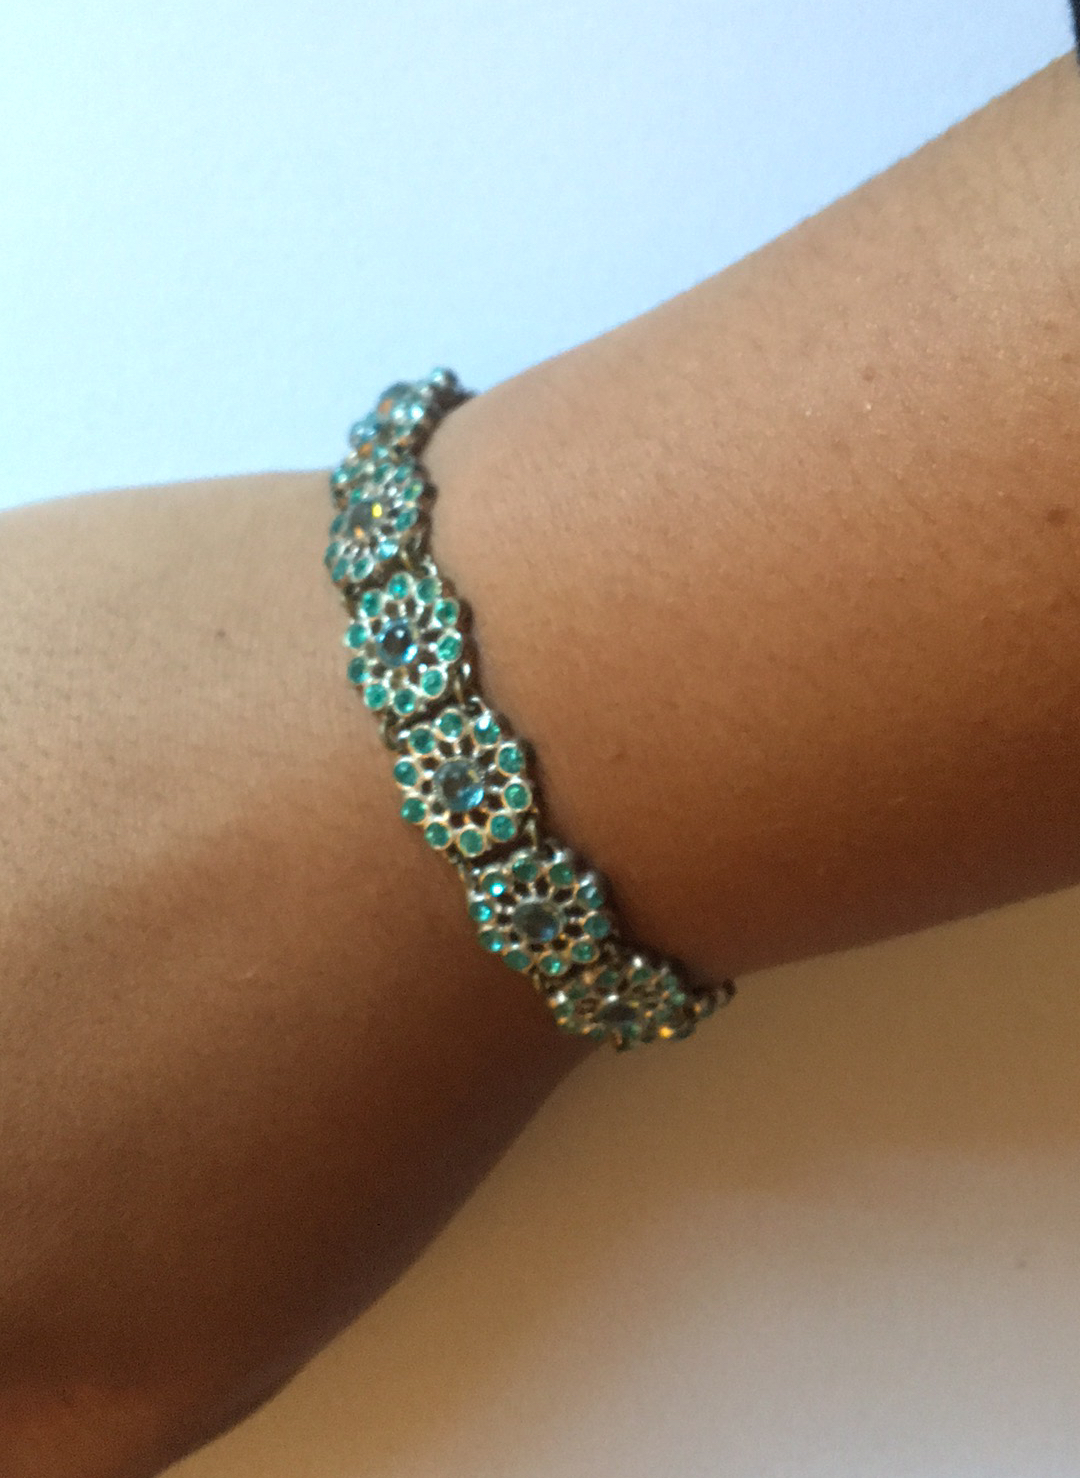 Bracelet- available in online store